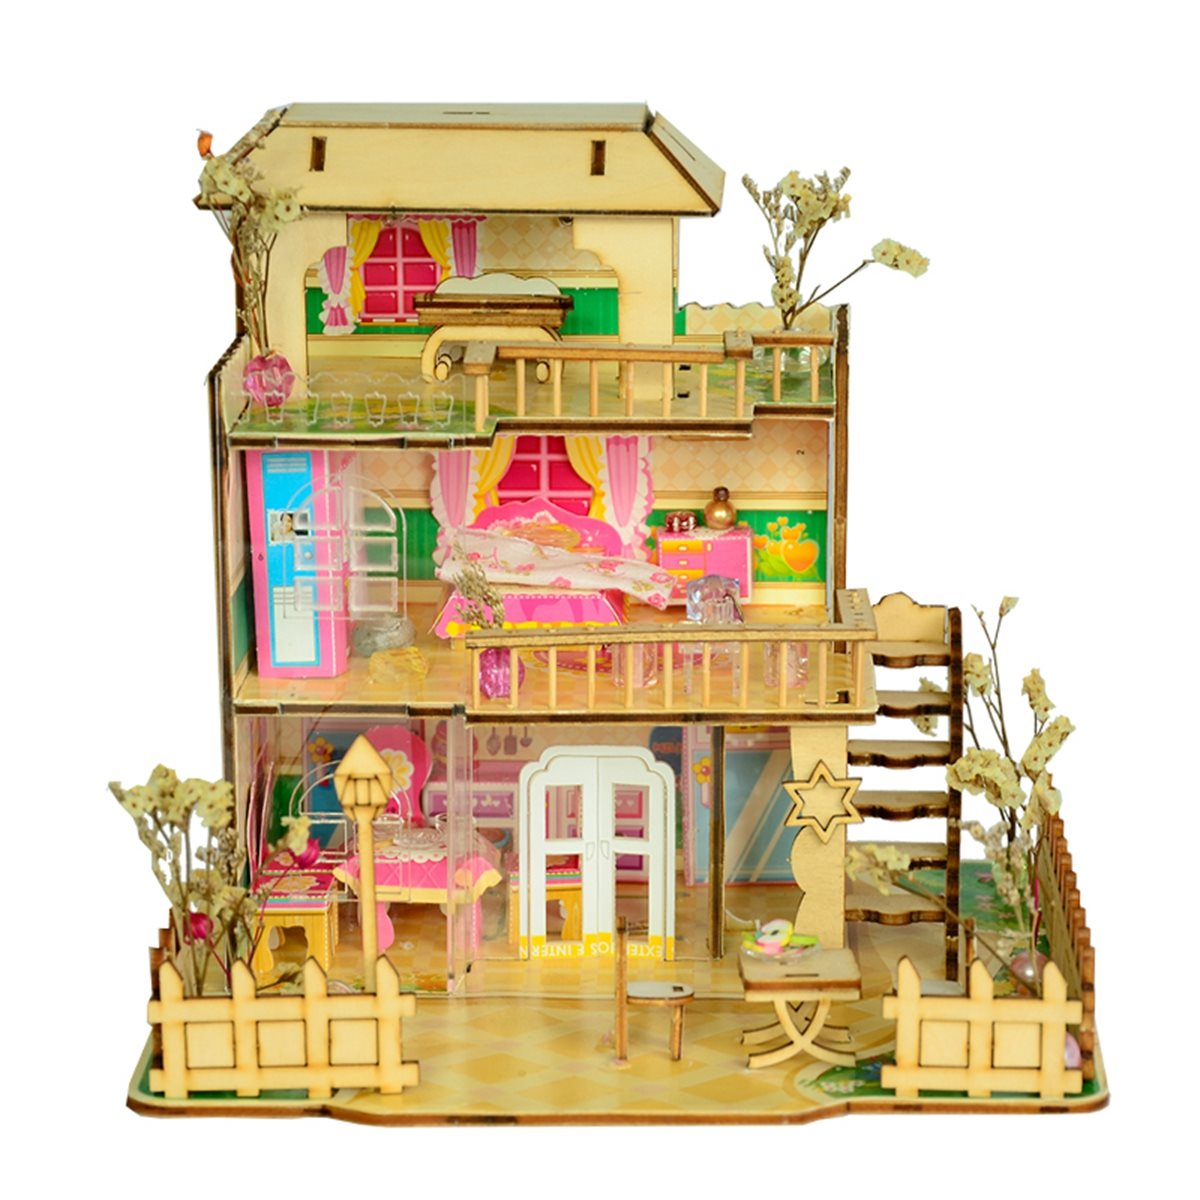 Small House Kit build it yourself homes Merry Provence House Room Diy Dollhouse Kit With Led Light Wood Decoration Miniaturas Dollhouse Toys For